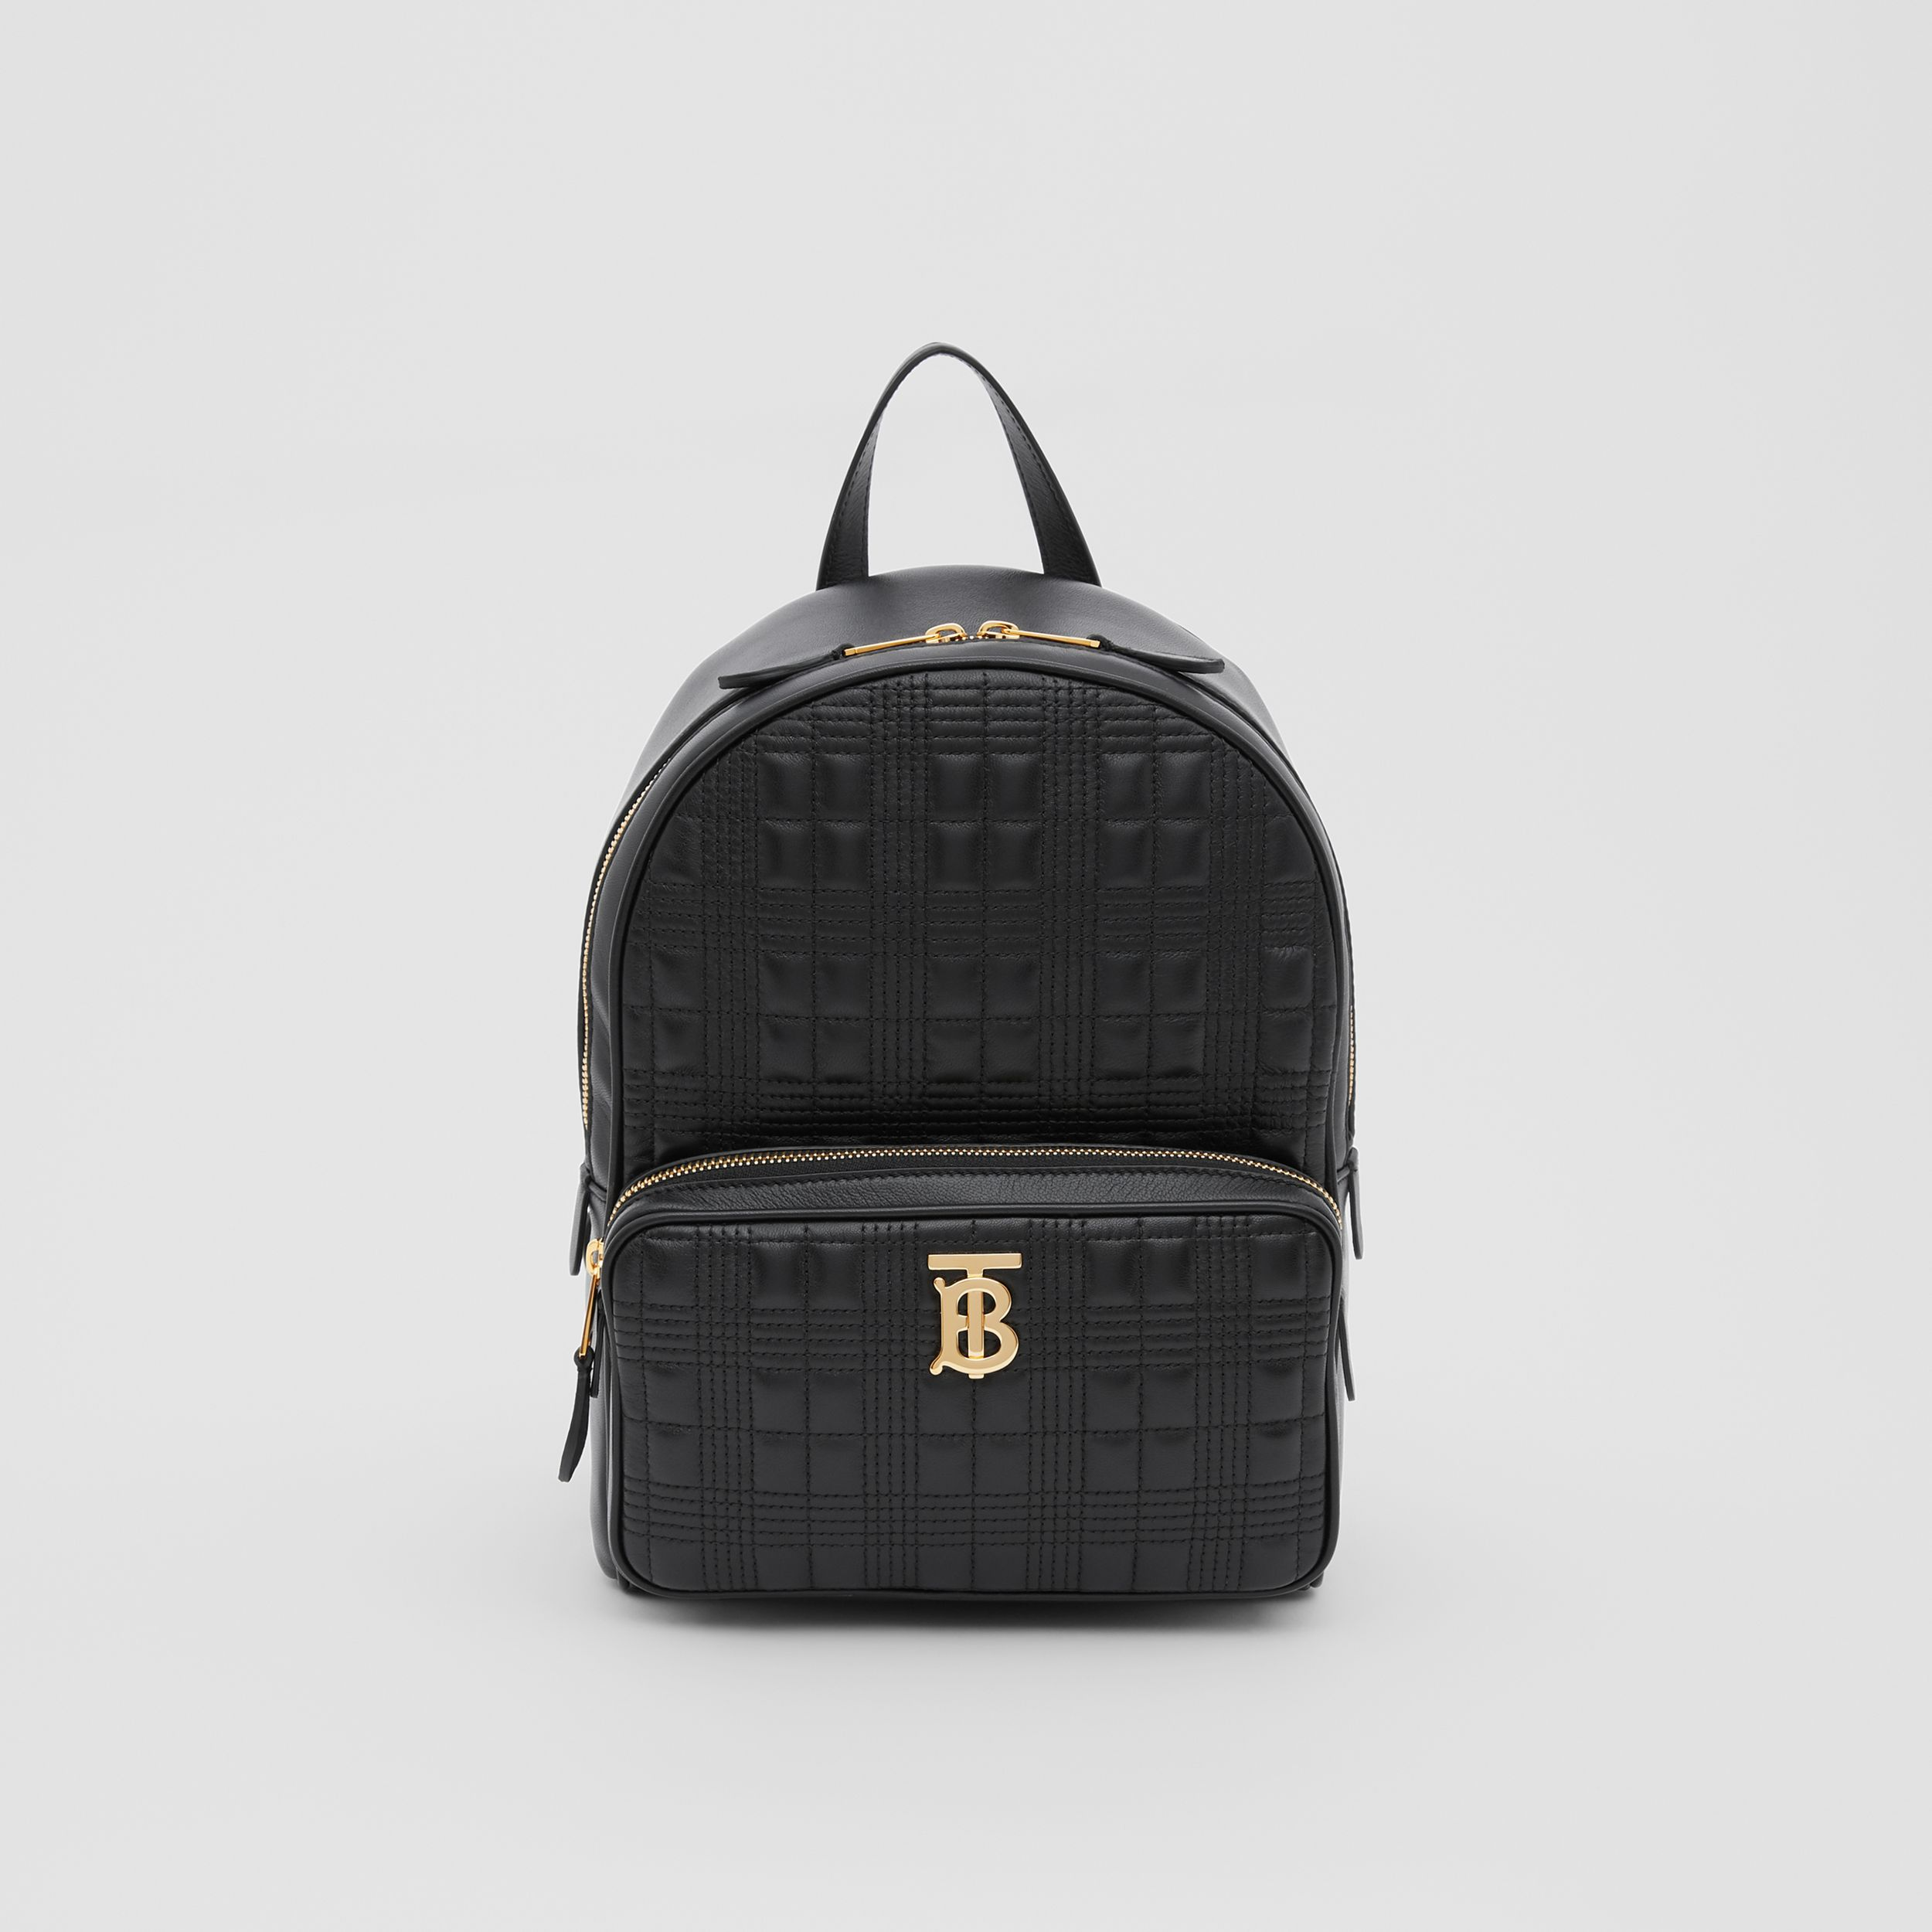 Quilted Check Lambskin Backpack in Black - Women | Burberry - 1